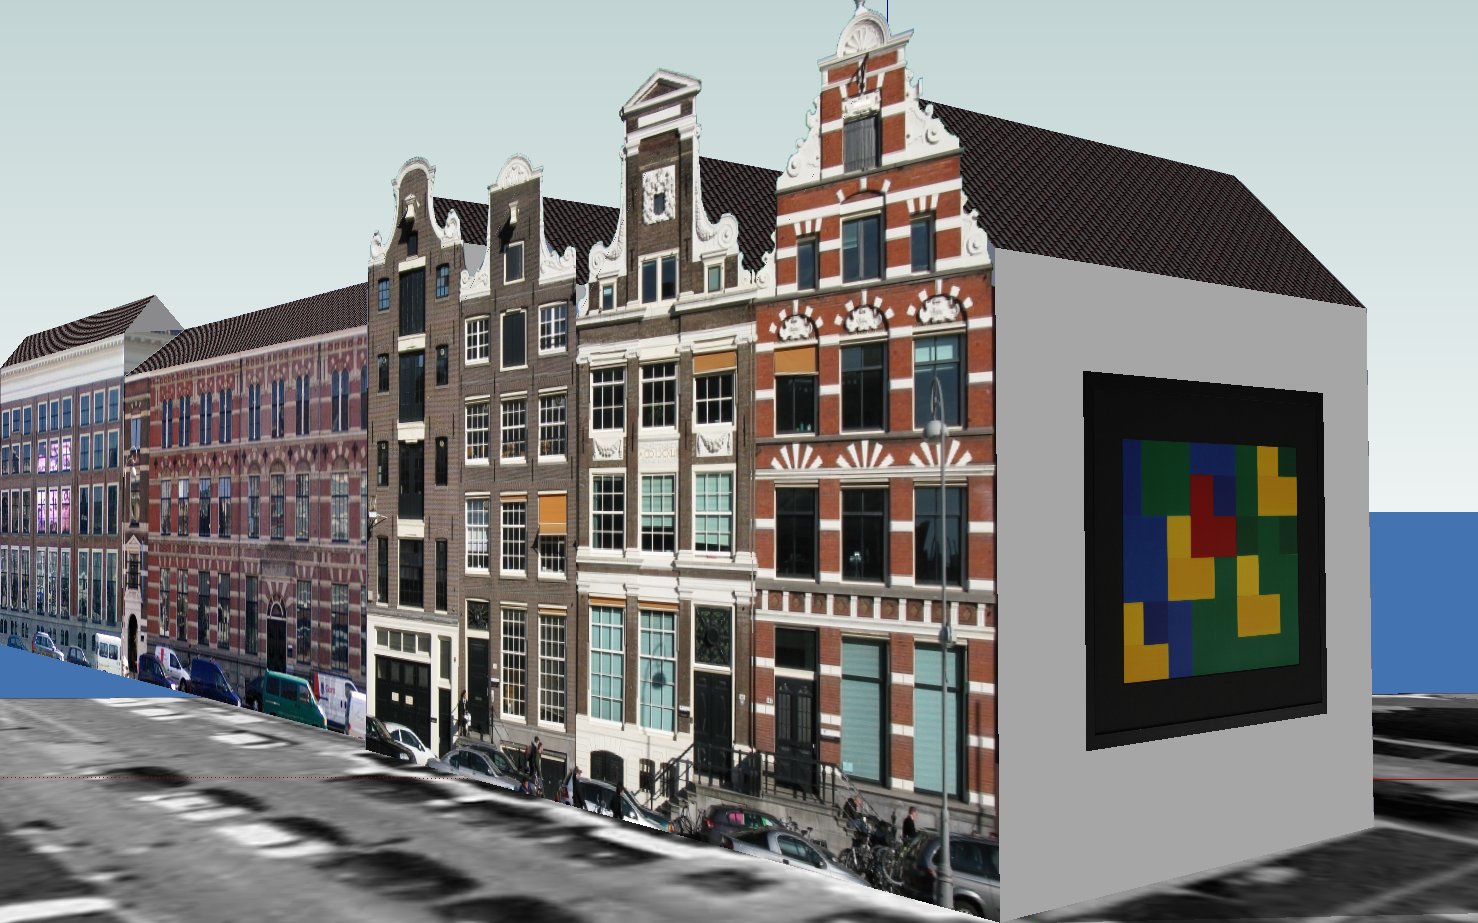 Amsterdam canal building with art work